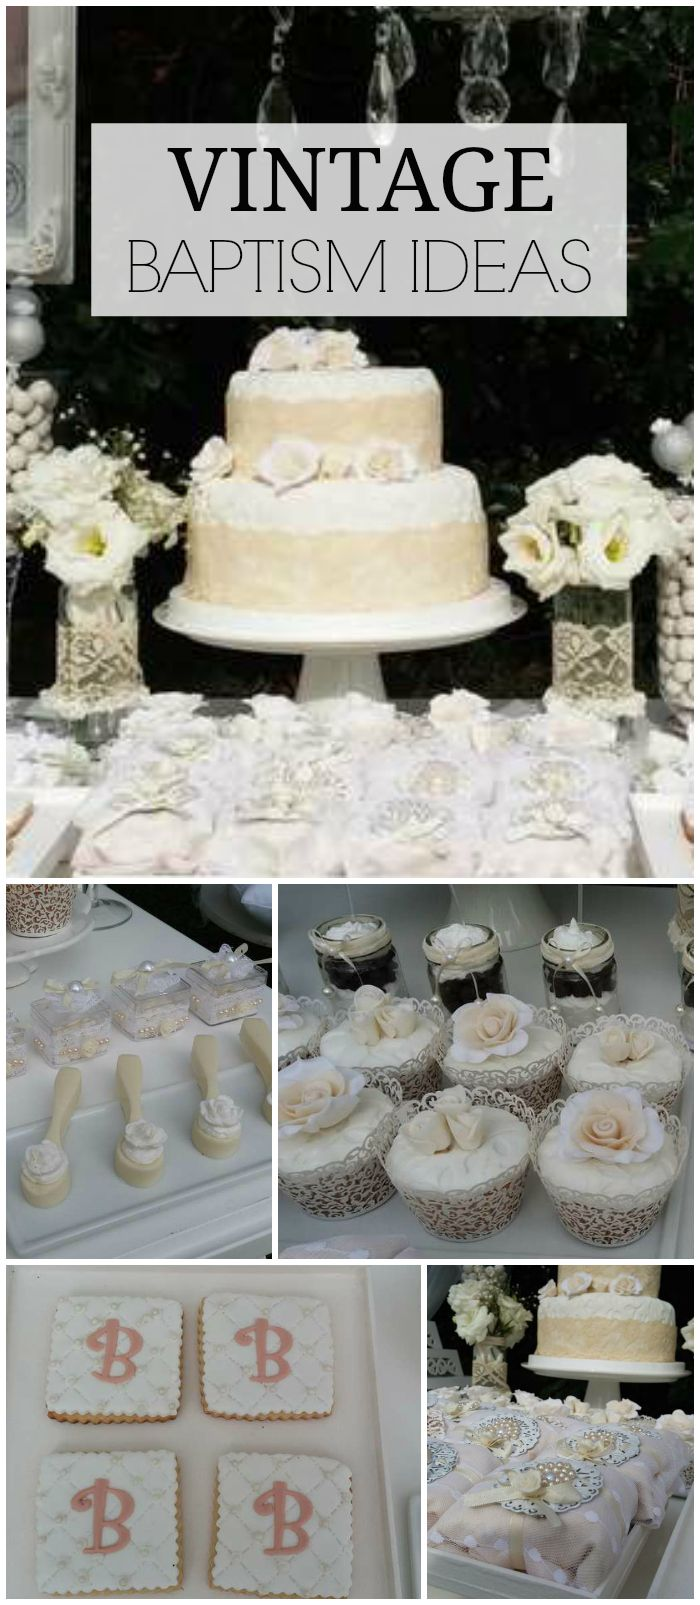 A lovely vintage baptism party in white with lots of floral touches! See more party planning ideas at CatchMyParty.com!